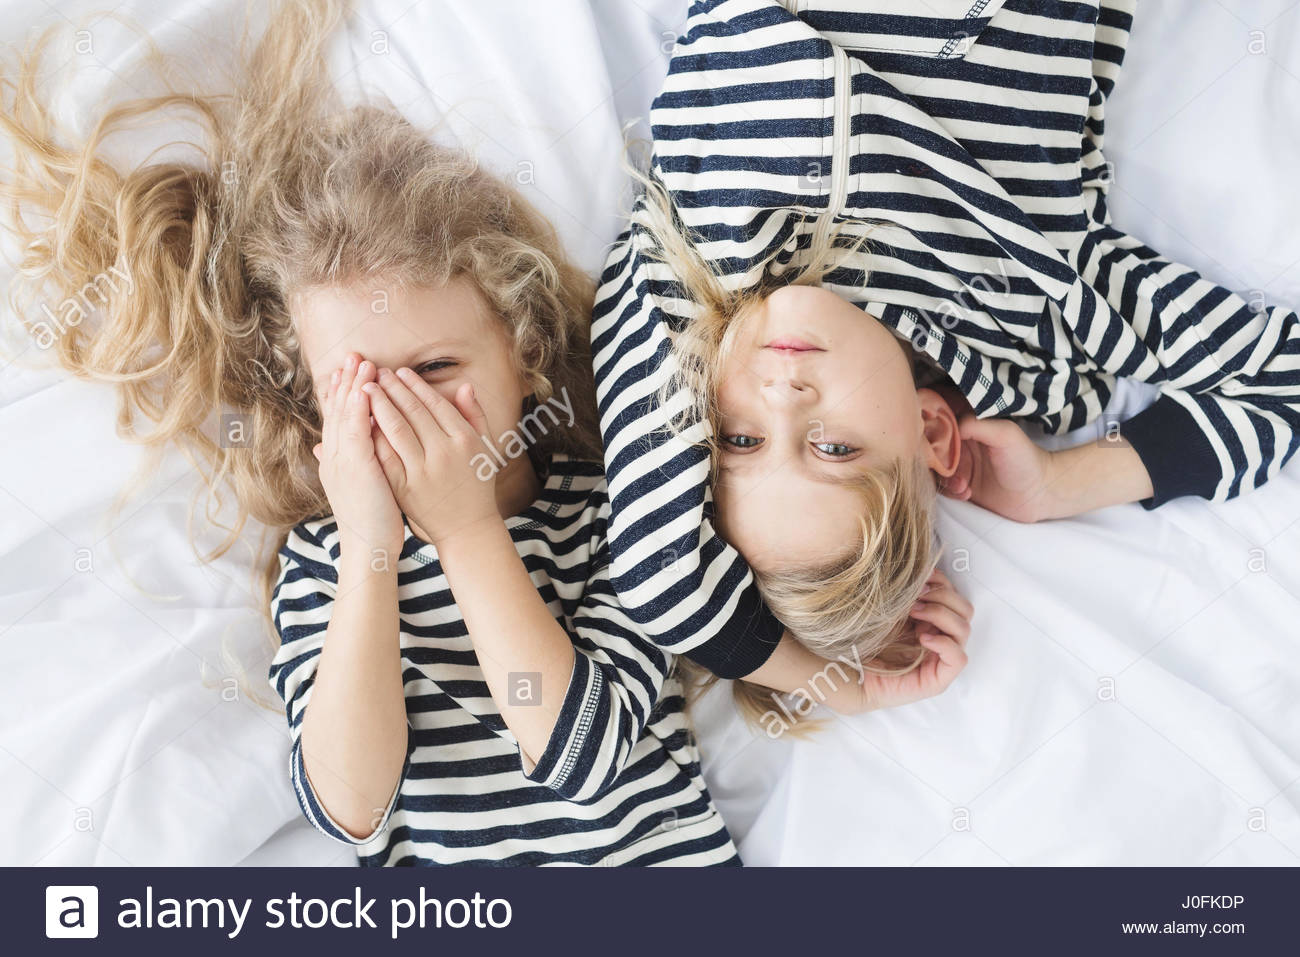 girl with white curly hair in a striped vest and a  boy with blond hair in a striped vest sleeping in bed. Children - Stock Image